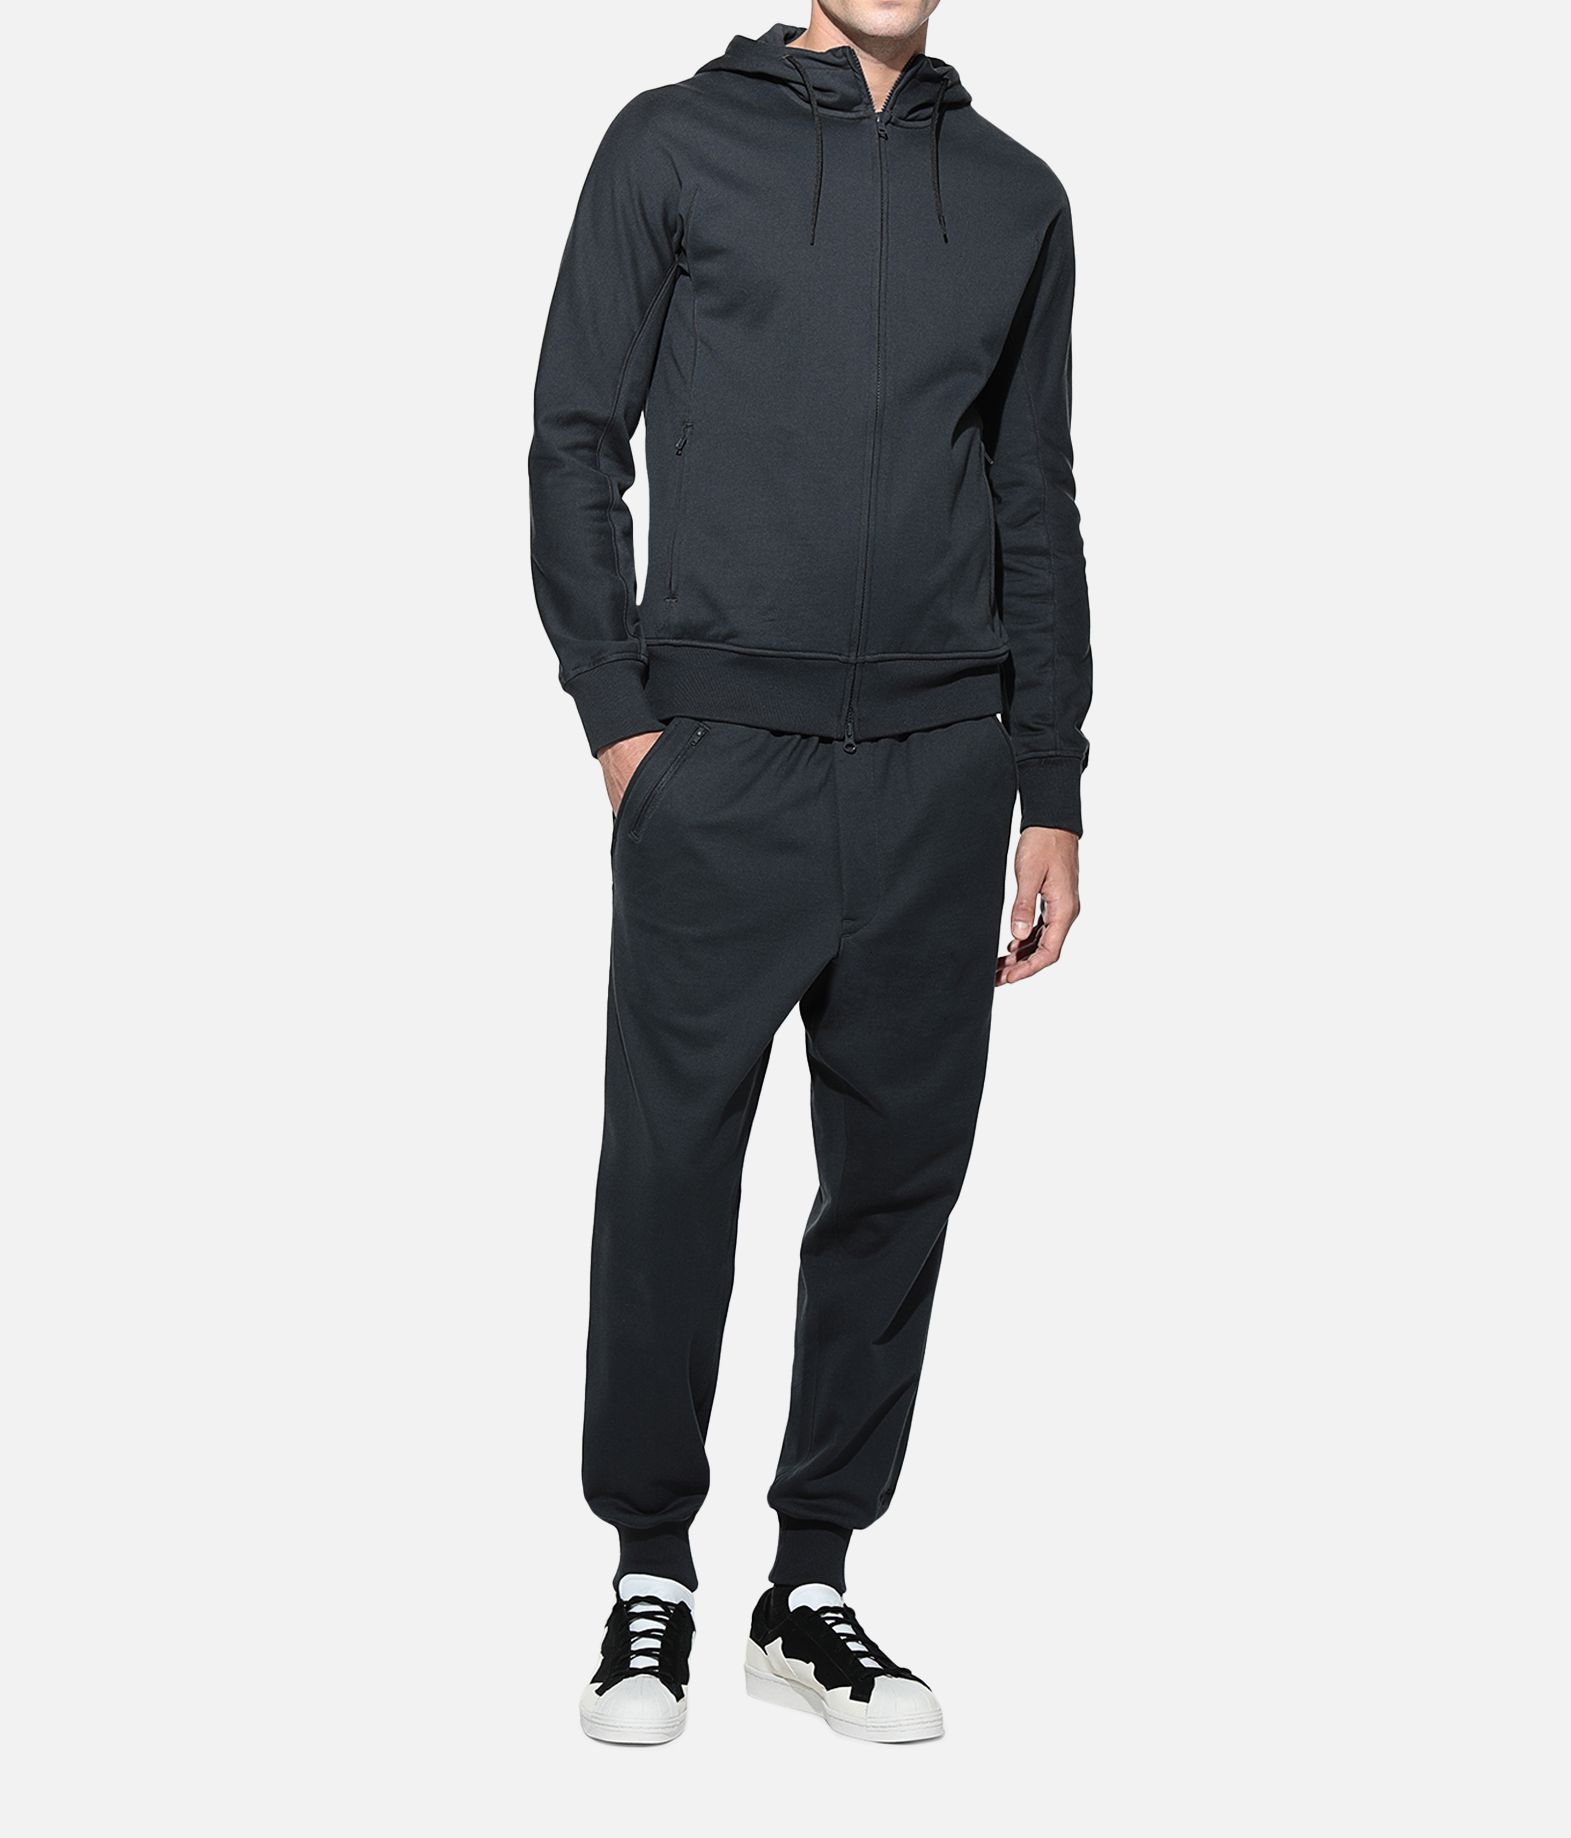 Y-3 Y-3 Classic Cuffed Pants Sweatpants Man a